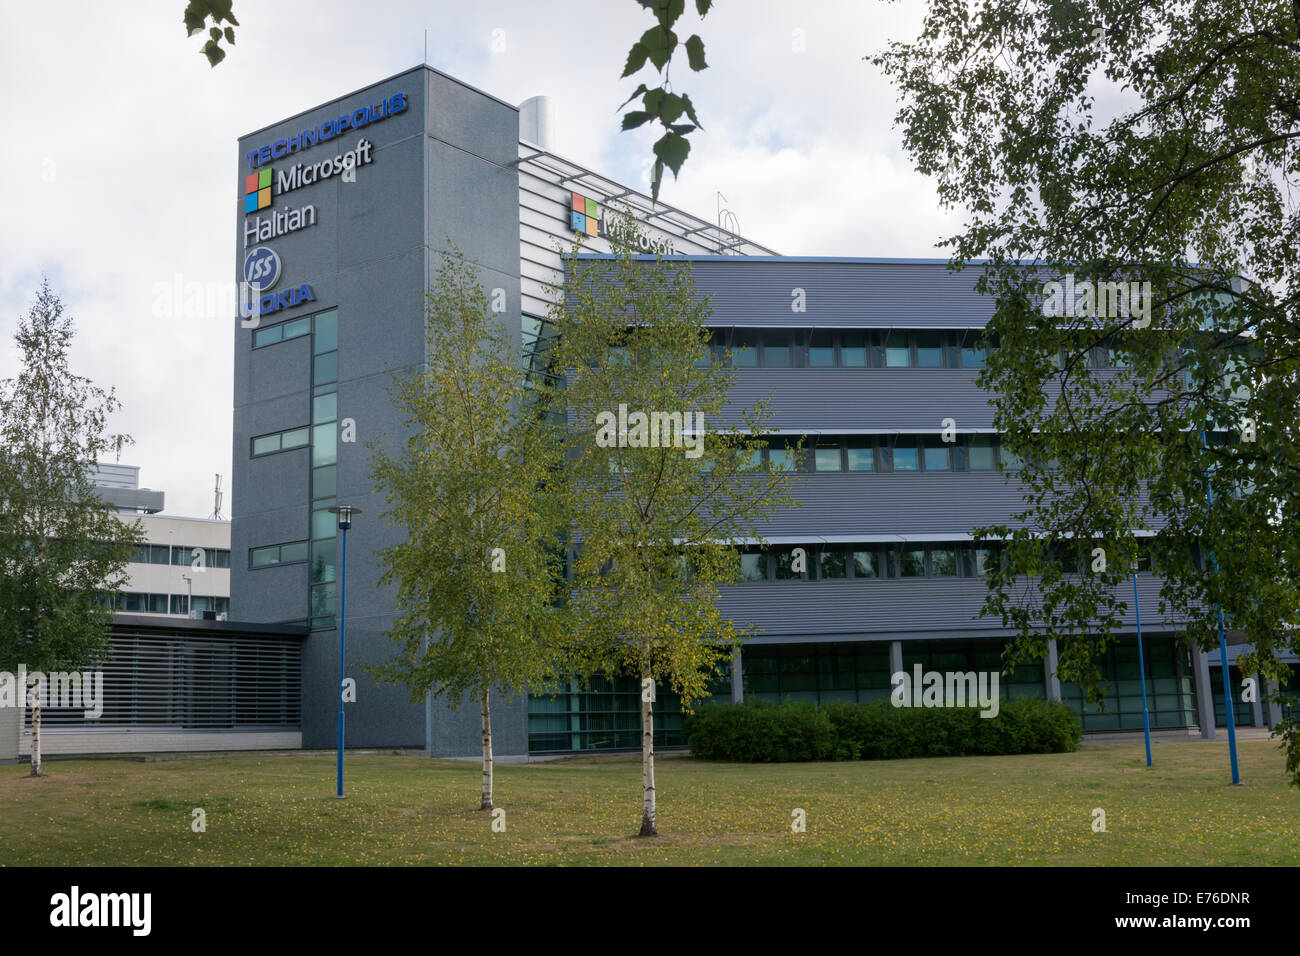 Microsoft building in Oulu Finland - Stock Image